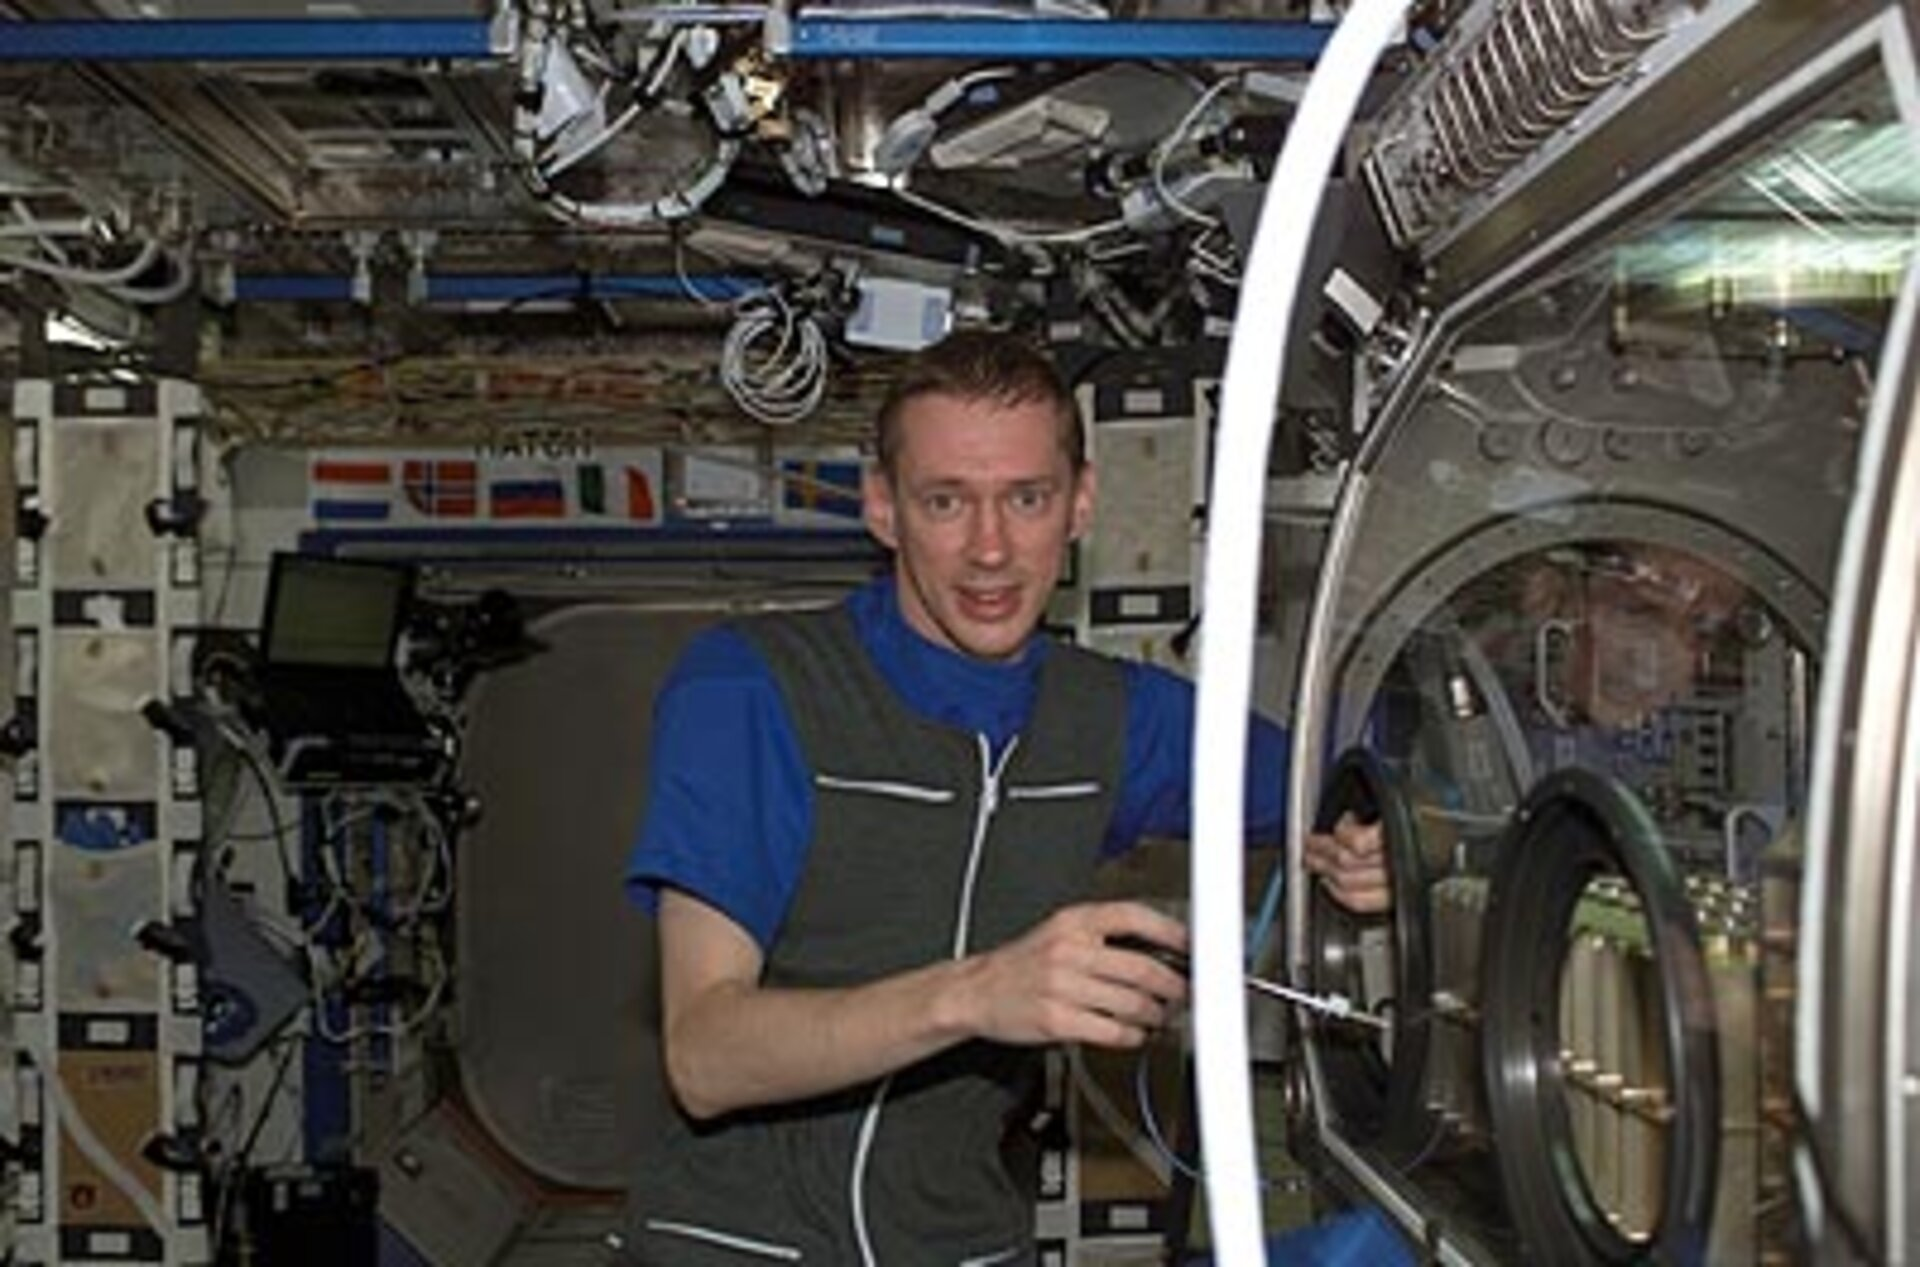 Frank De Winne works with the Microgravity Science Glovebox